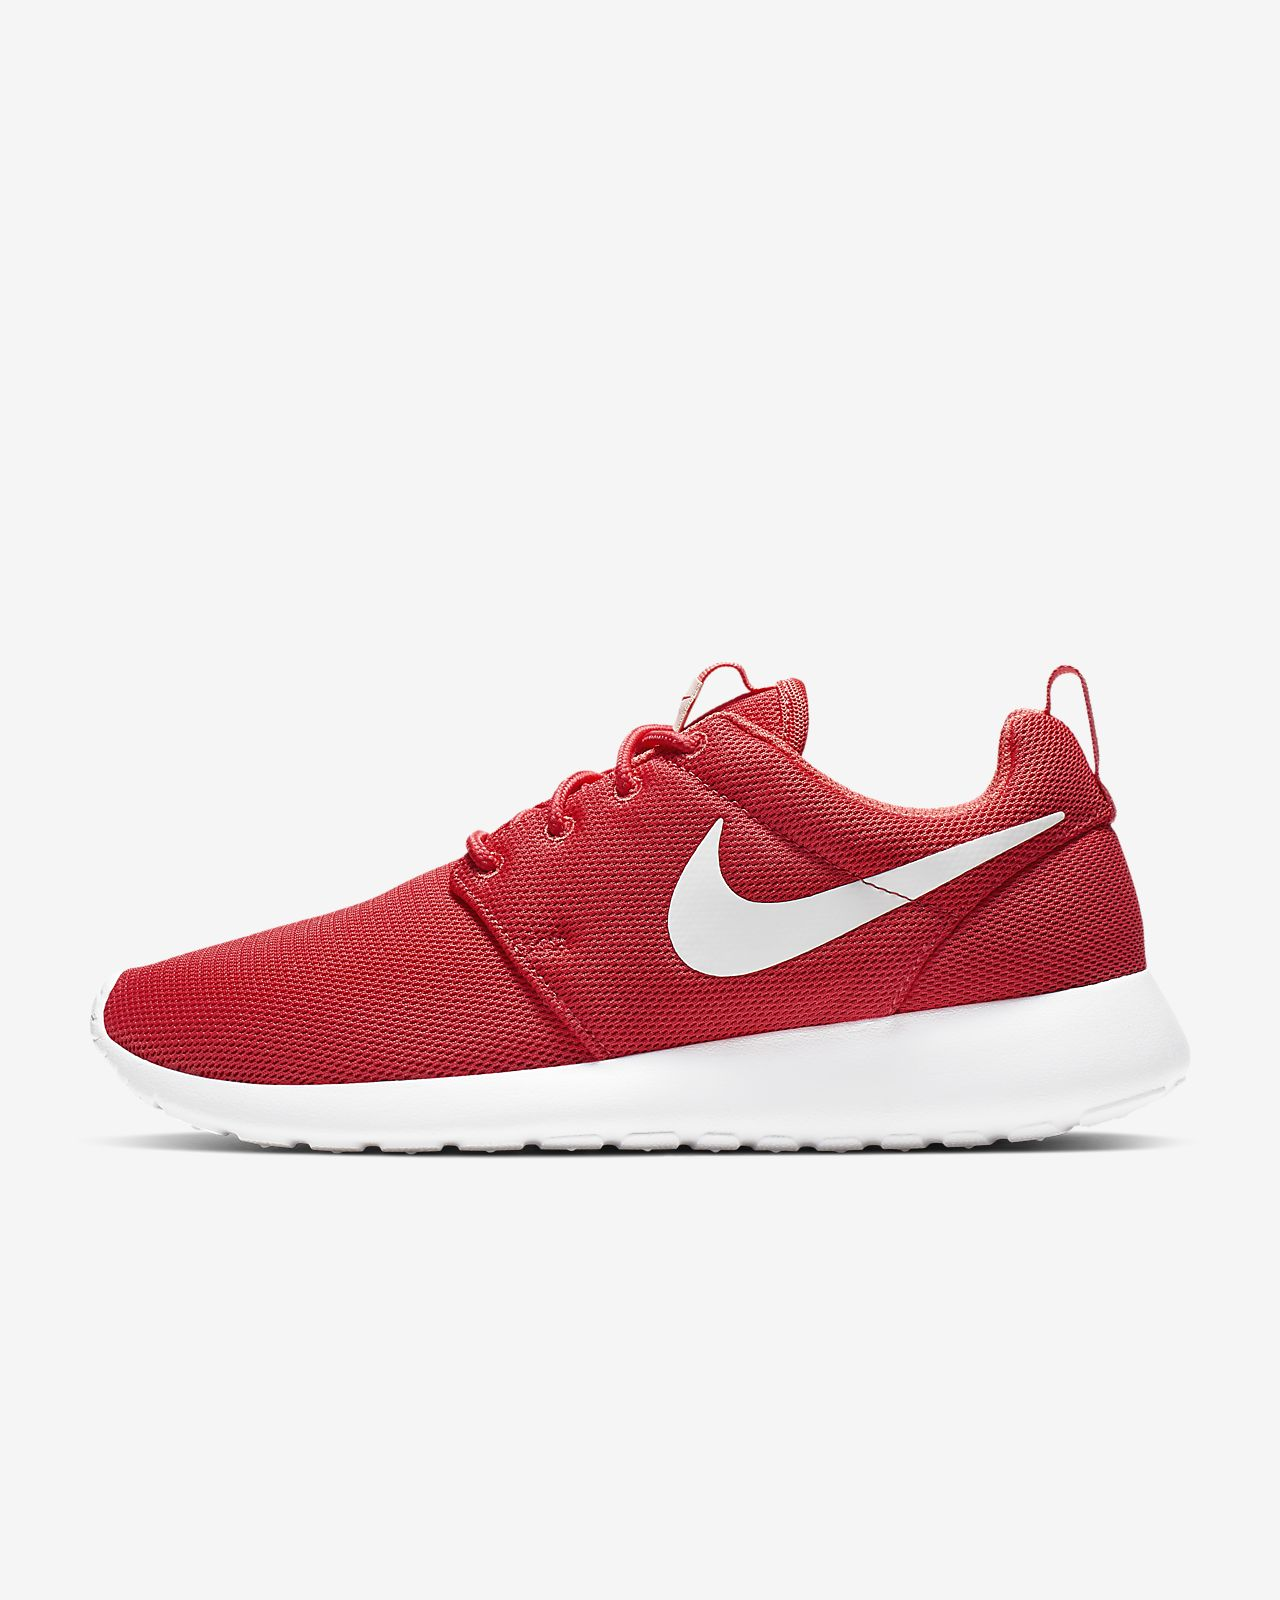 8113a3759031 Nike Roshe One Women s Shoe. Nike.com